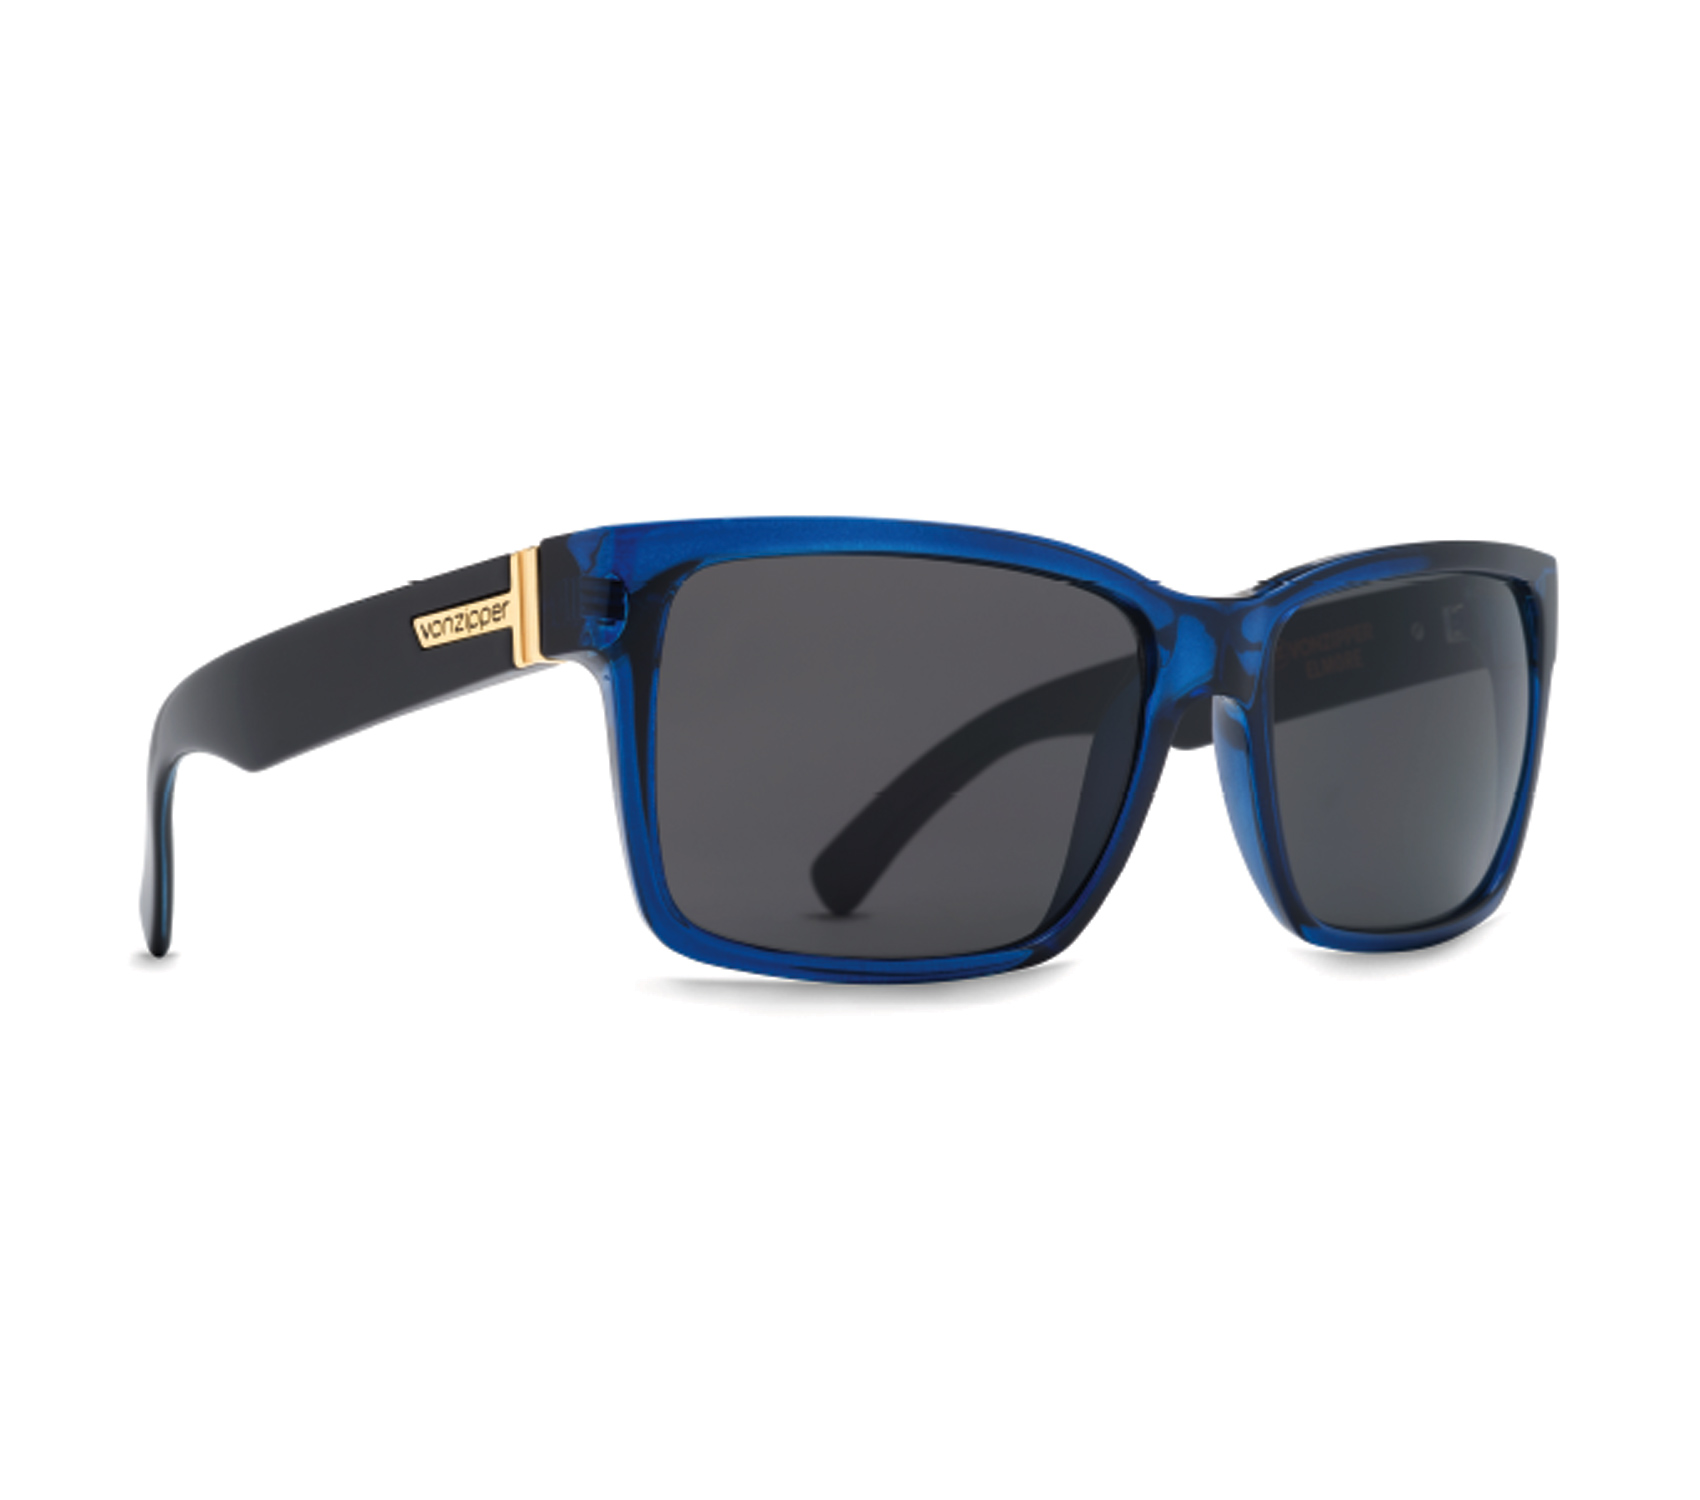 Product image of VonZipper Elmore Sunglasses in Slate Crystal - Grey Lens